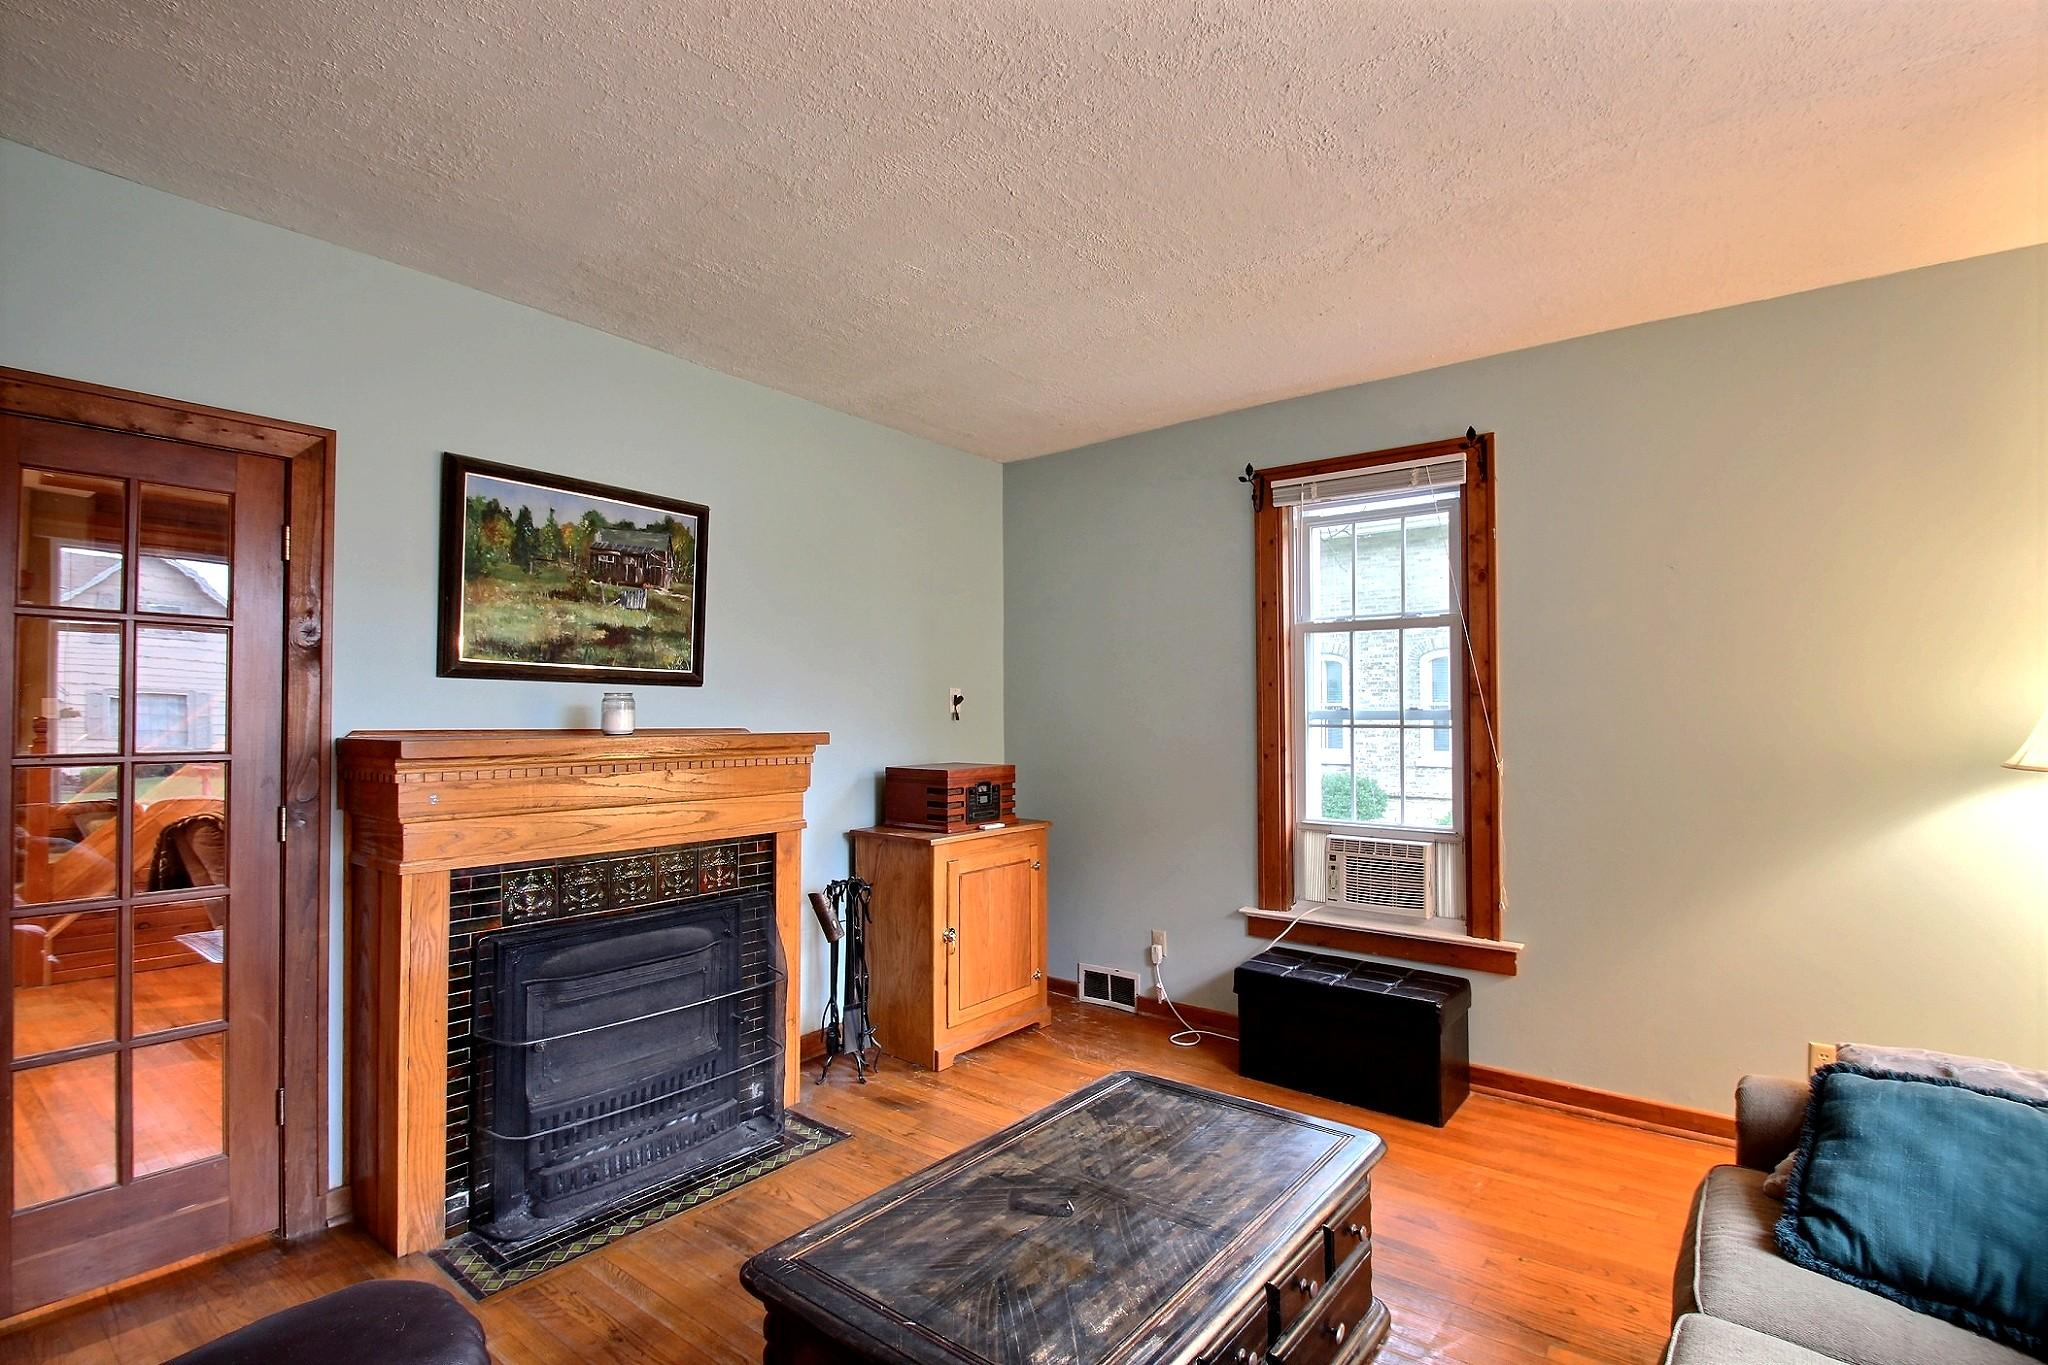 328 Oakton Ave, Pewaukee, Wisconsin 53072, 4 Bedrooms Bedrooms, ,1 BathroomBathrooms,Single-Family,For Sale,Oakton Ave,1601470